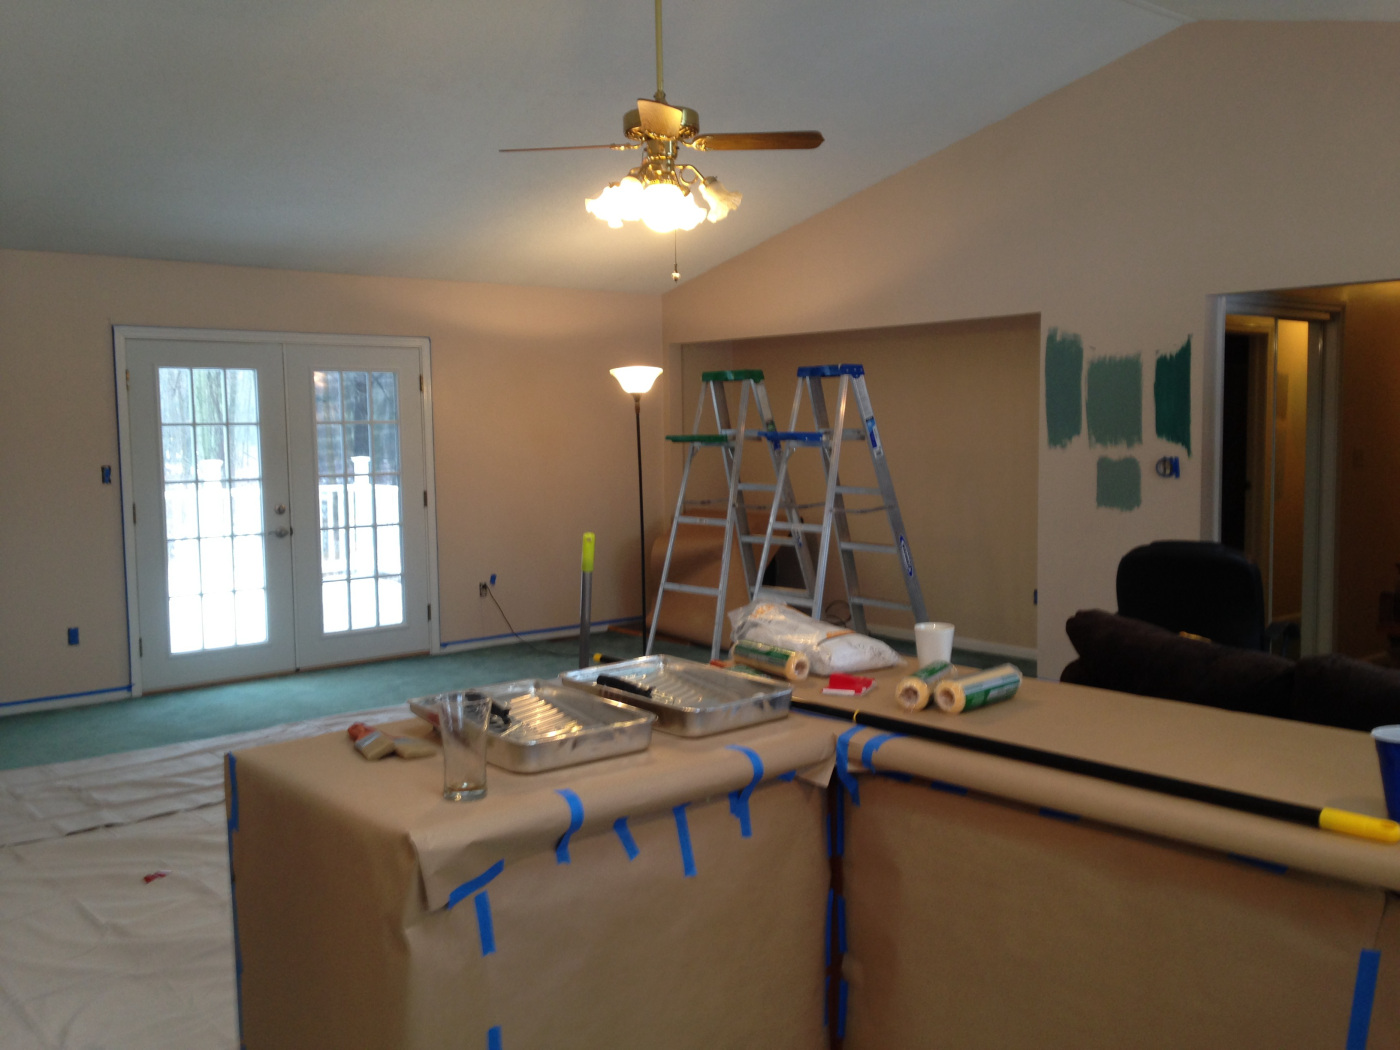 Getting ready! Testing out paint colors and covering anything we don't want covered in ceiling or wall paint.